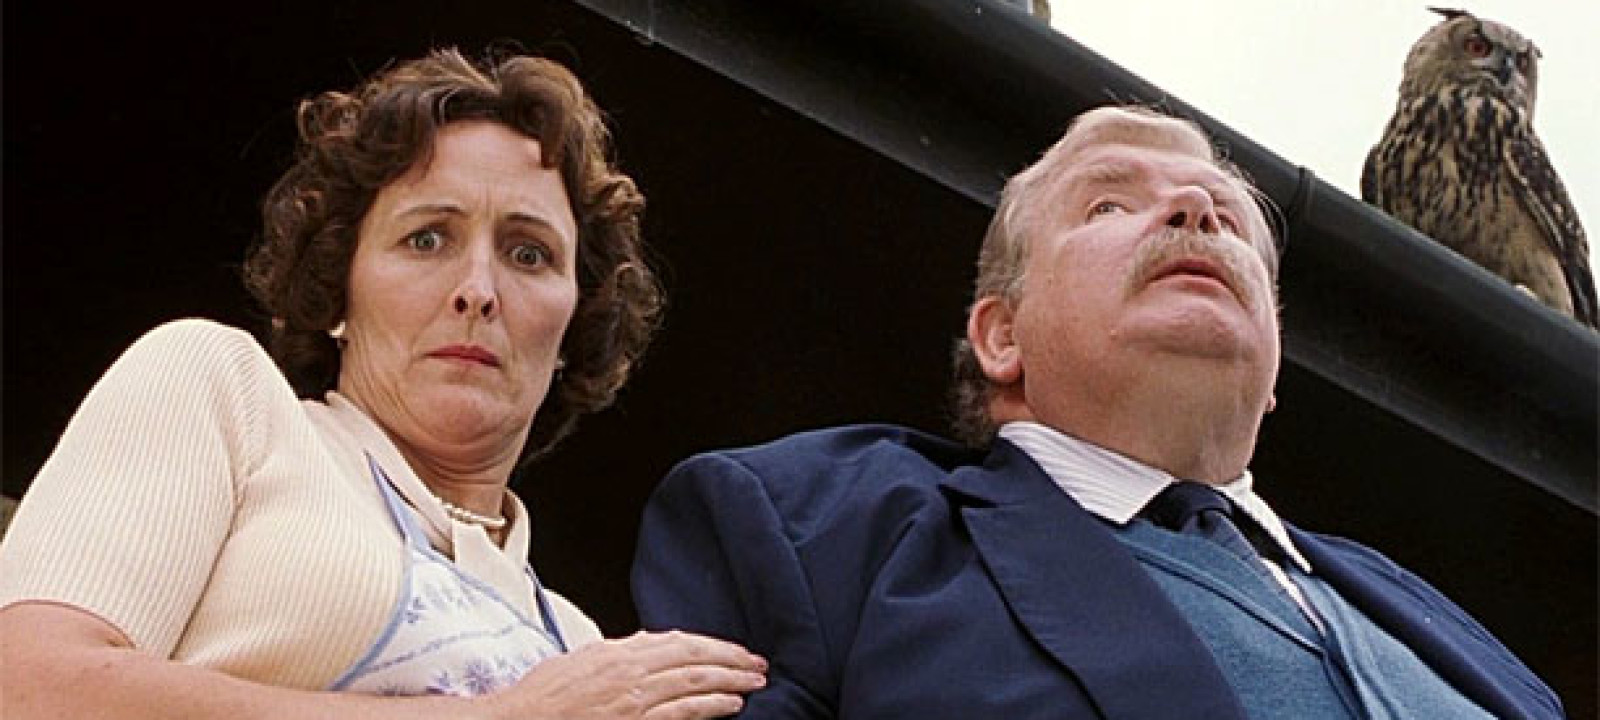 Fiona Shaw as Aunt Petunia Dursley in Harry Potter and the Sorcerer's Stone